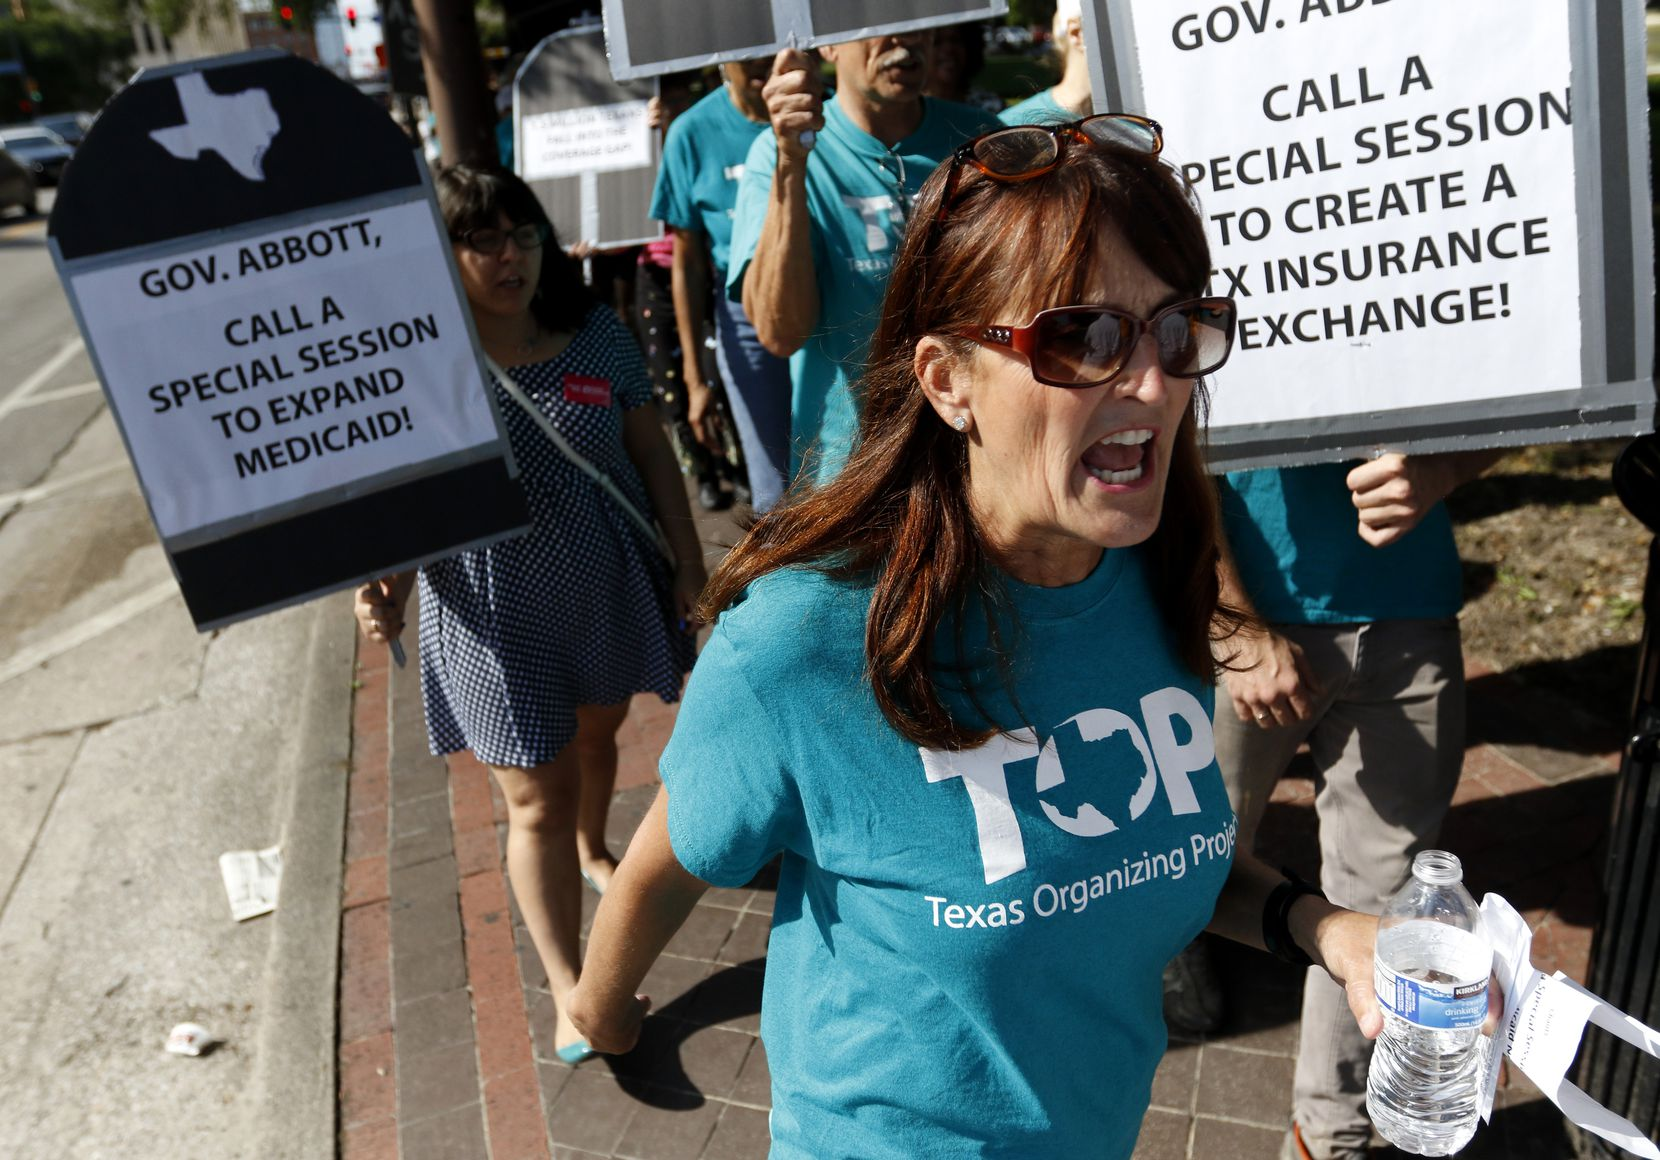 Business leaders, health-care industry executives, liberal activists and Democrats want the Texas Legislature next year to expand Medicaid, as well as remove roadblocks to children's enrollment in government health insurance programs for low-income people. Medicaid expansion has been blocked in Texas, despite protests such as this one in Dallas in 2015.